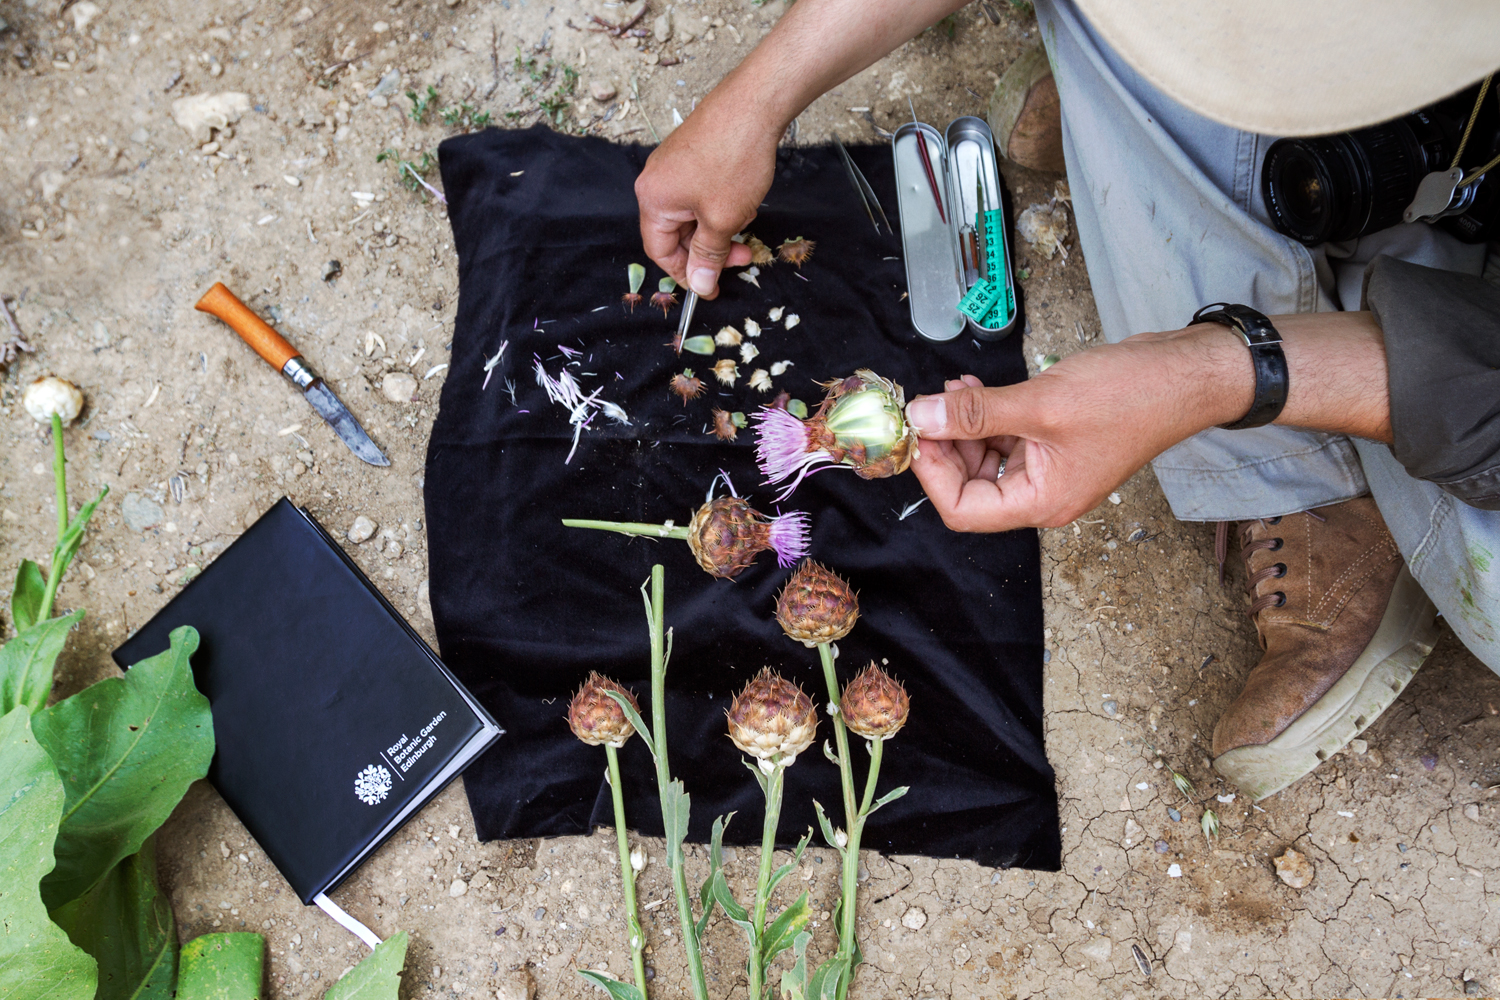 A botanist dissects  Centaurea regia , a native thistle, collected in the Qara Dagh mountains. In collaboration with the Royal Botanic Garden at Edinburgh, scientists at Nature Iraq, a local environmental group, are collect specimening for the forthcoming 'Flora of Iraq', a comprehensive guide to regional plants. It is one of the many efforts to preserve and document the region's wealth of native plants.